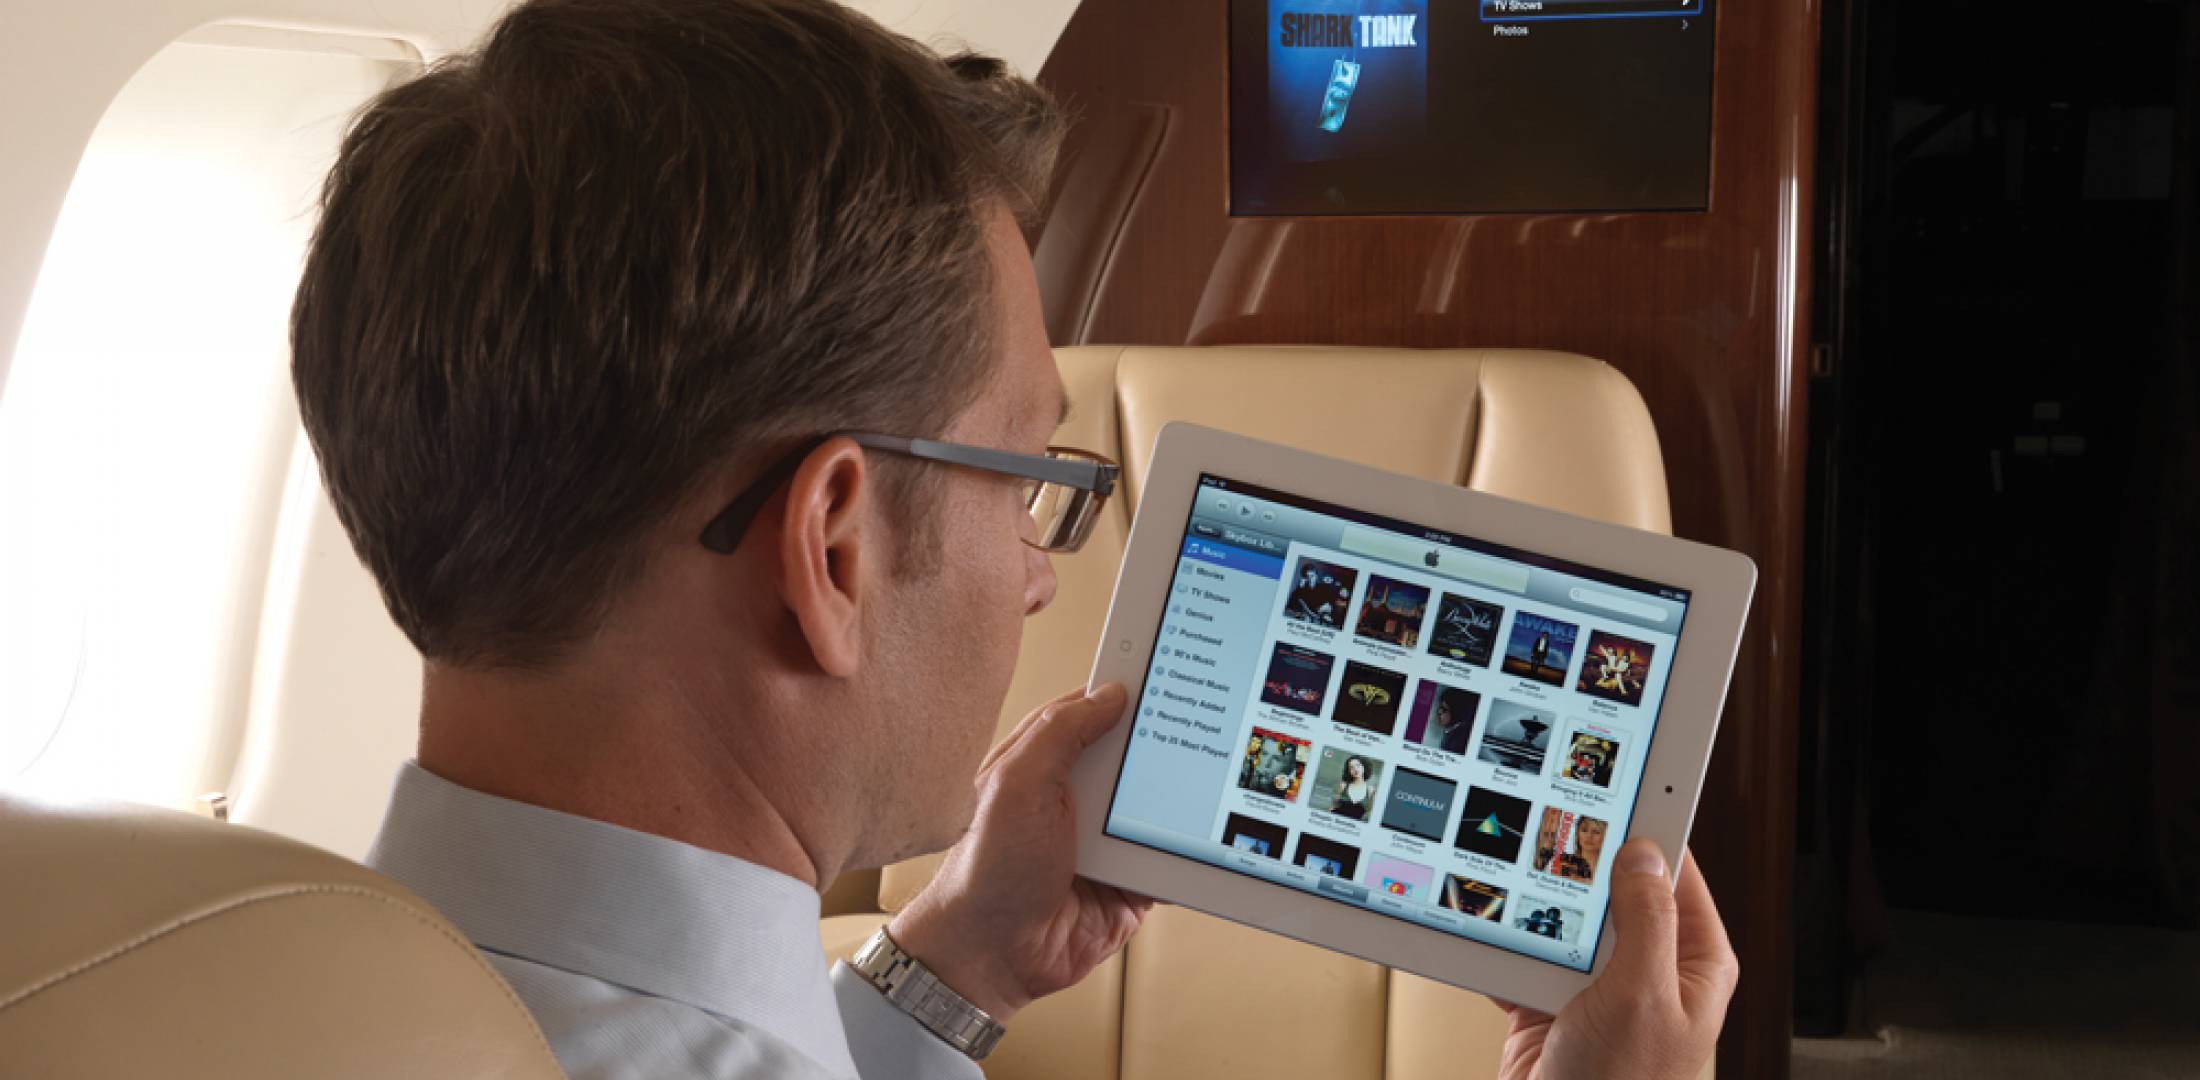 Skybox includes two HDMI Rockwell Collins Skybox allows up to 10 users to select and view TV shows and movies on their personal devices.